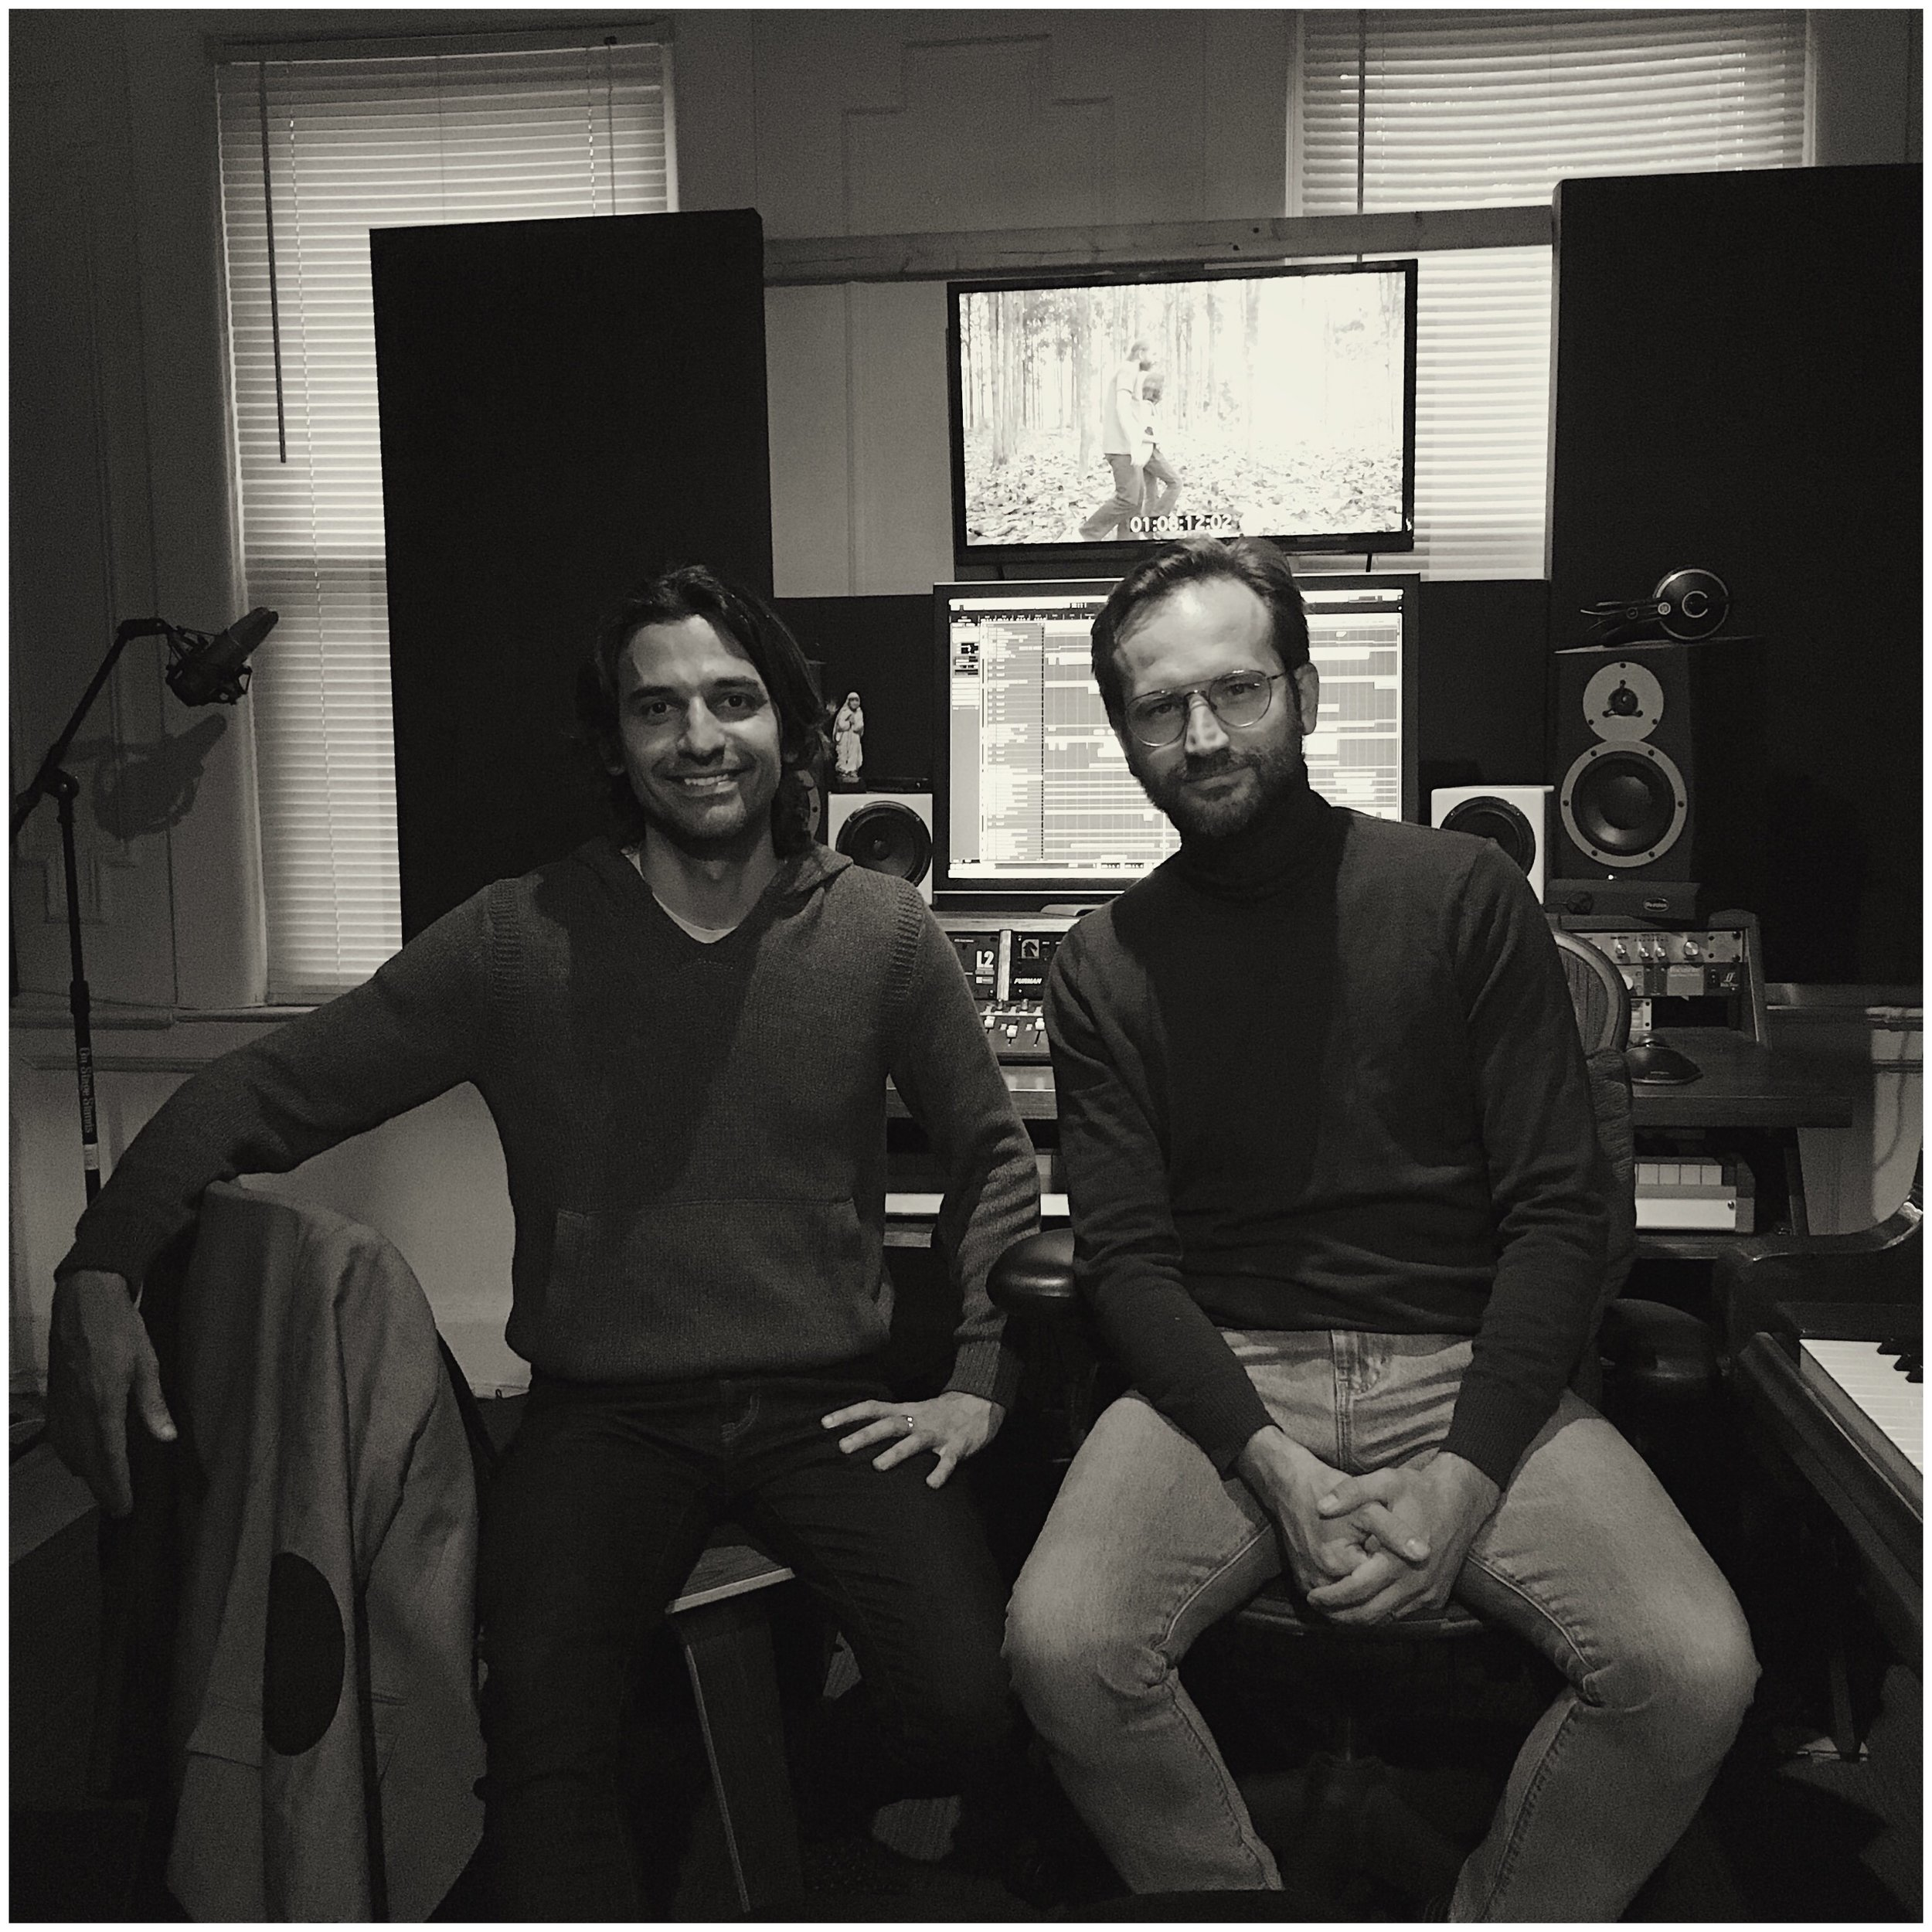 In the studio with director Marcelo Bendotti - Going over final score cues for the upcoming feature film Cova Rasa